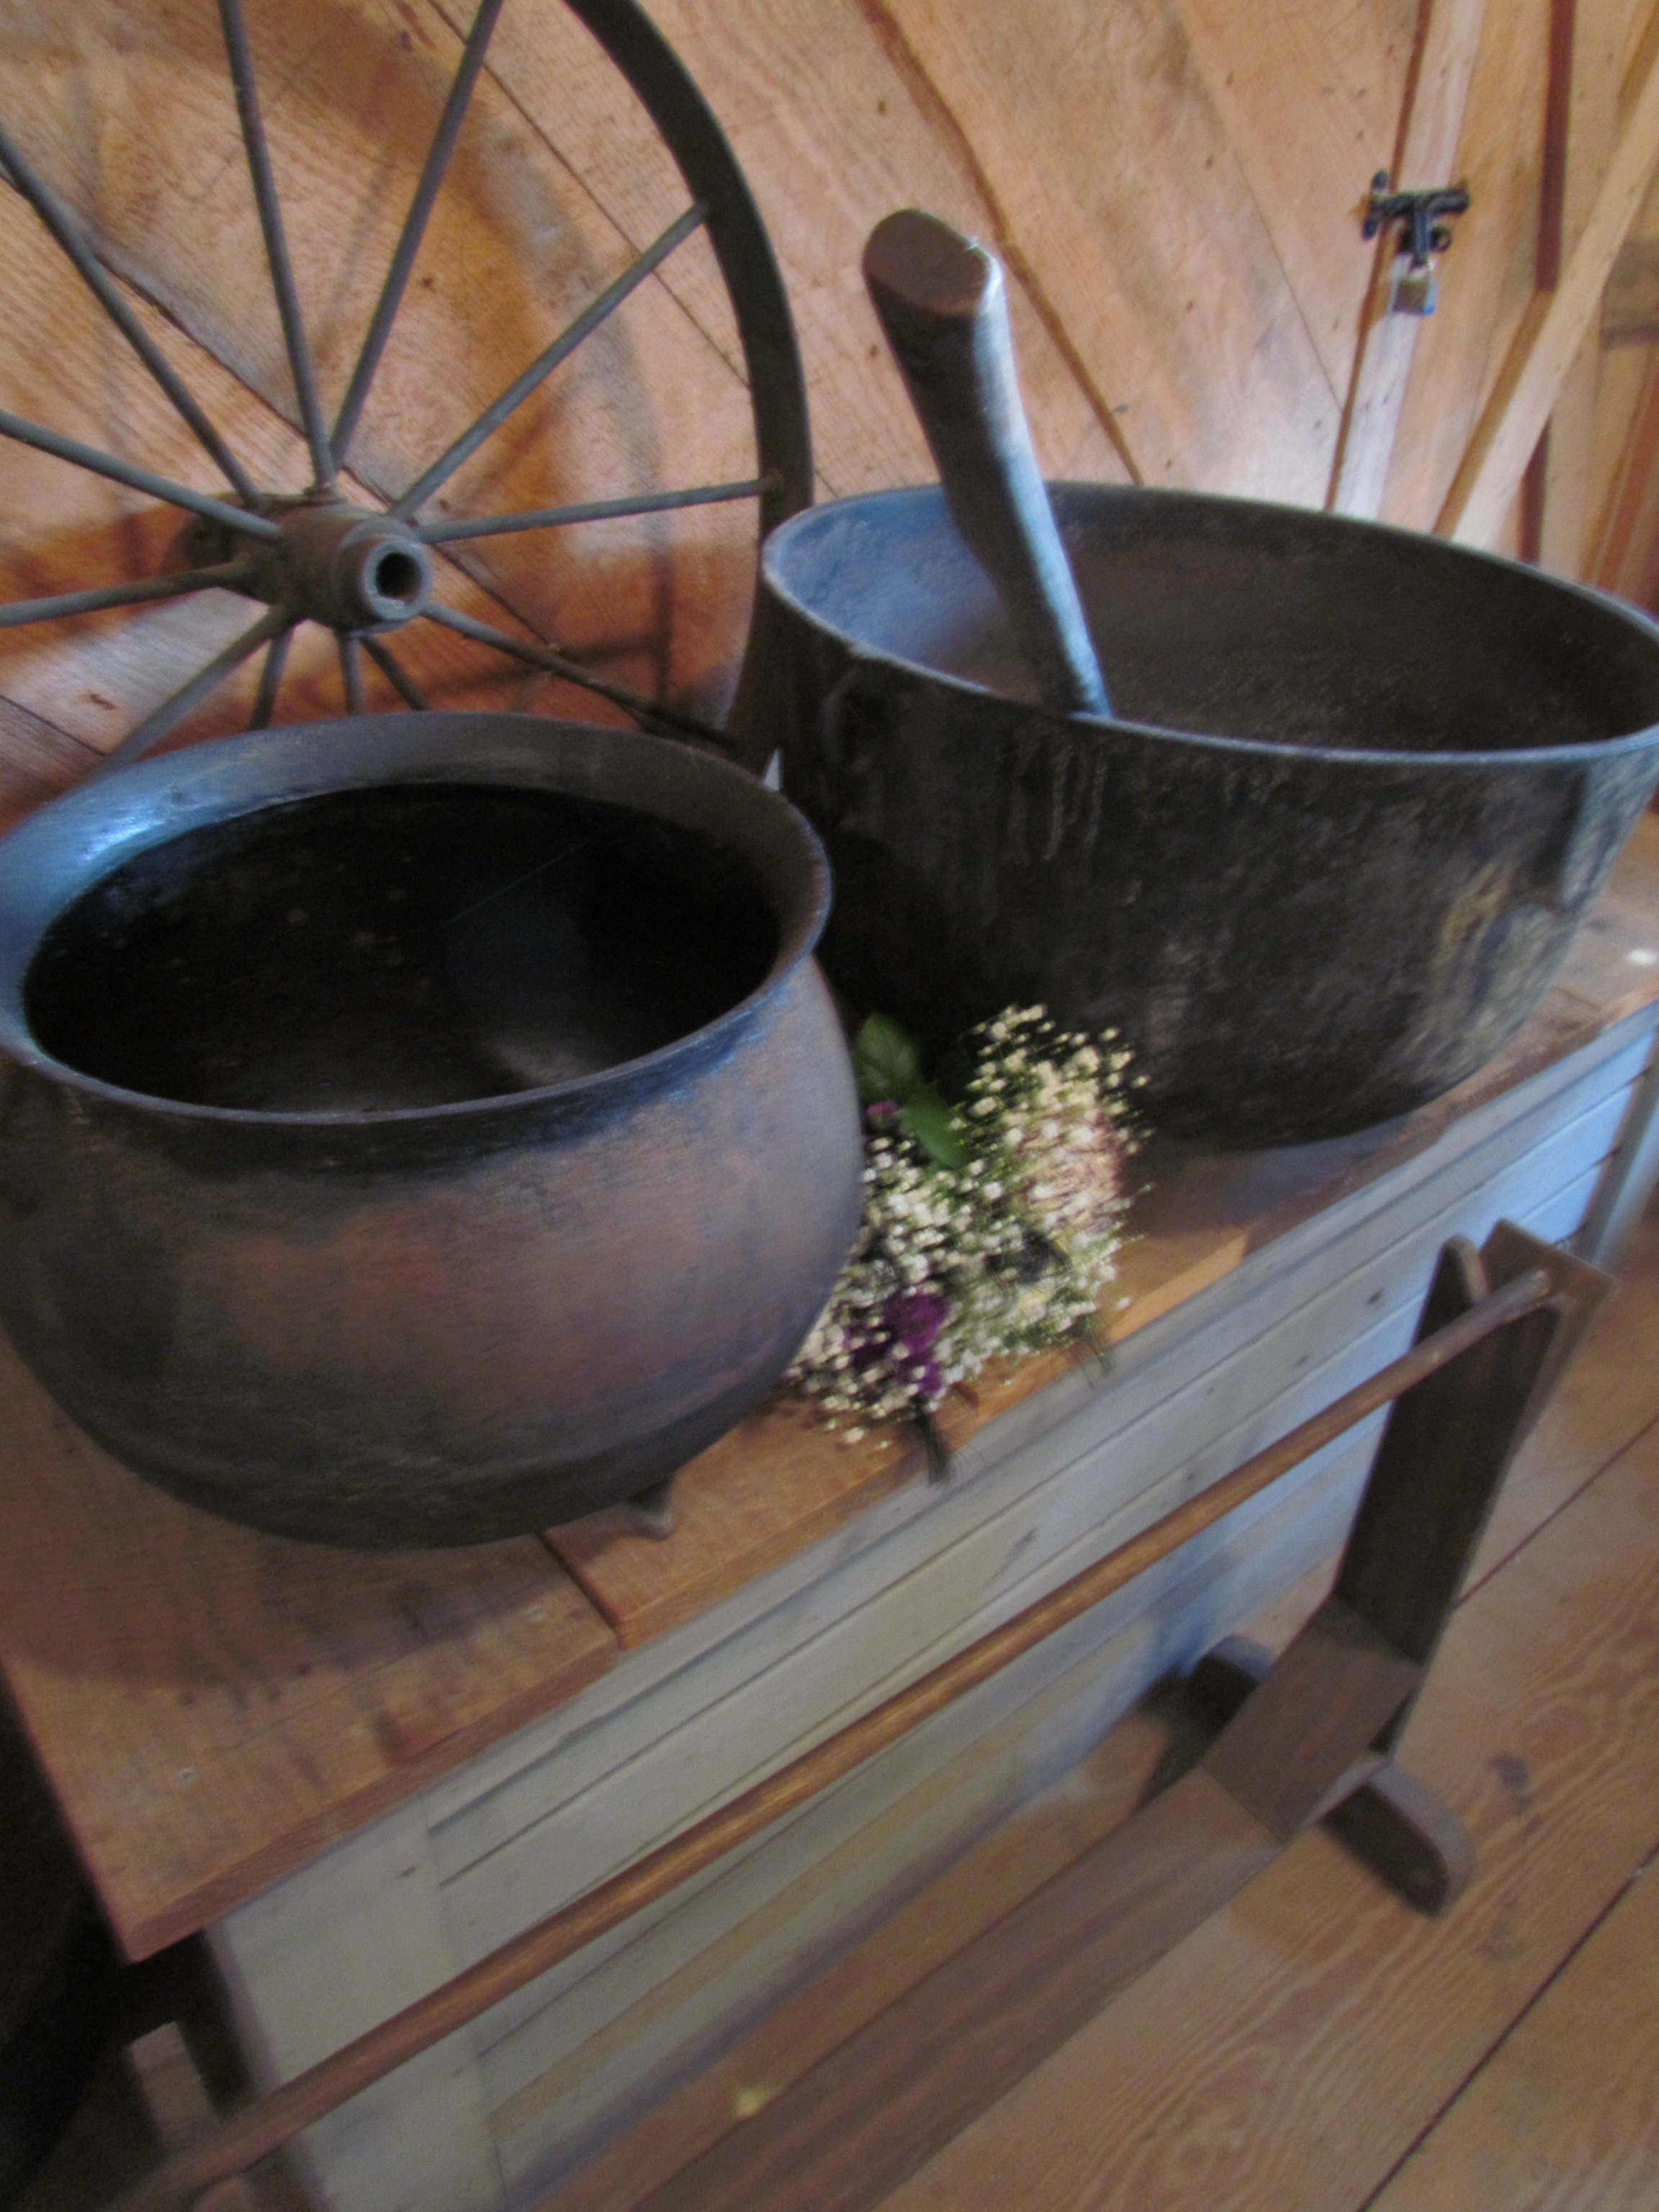 Iron pot, wheel, flowers, rustic